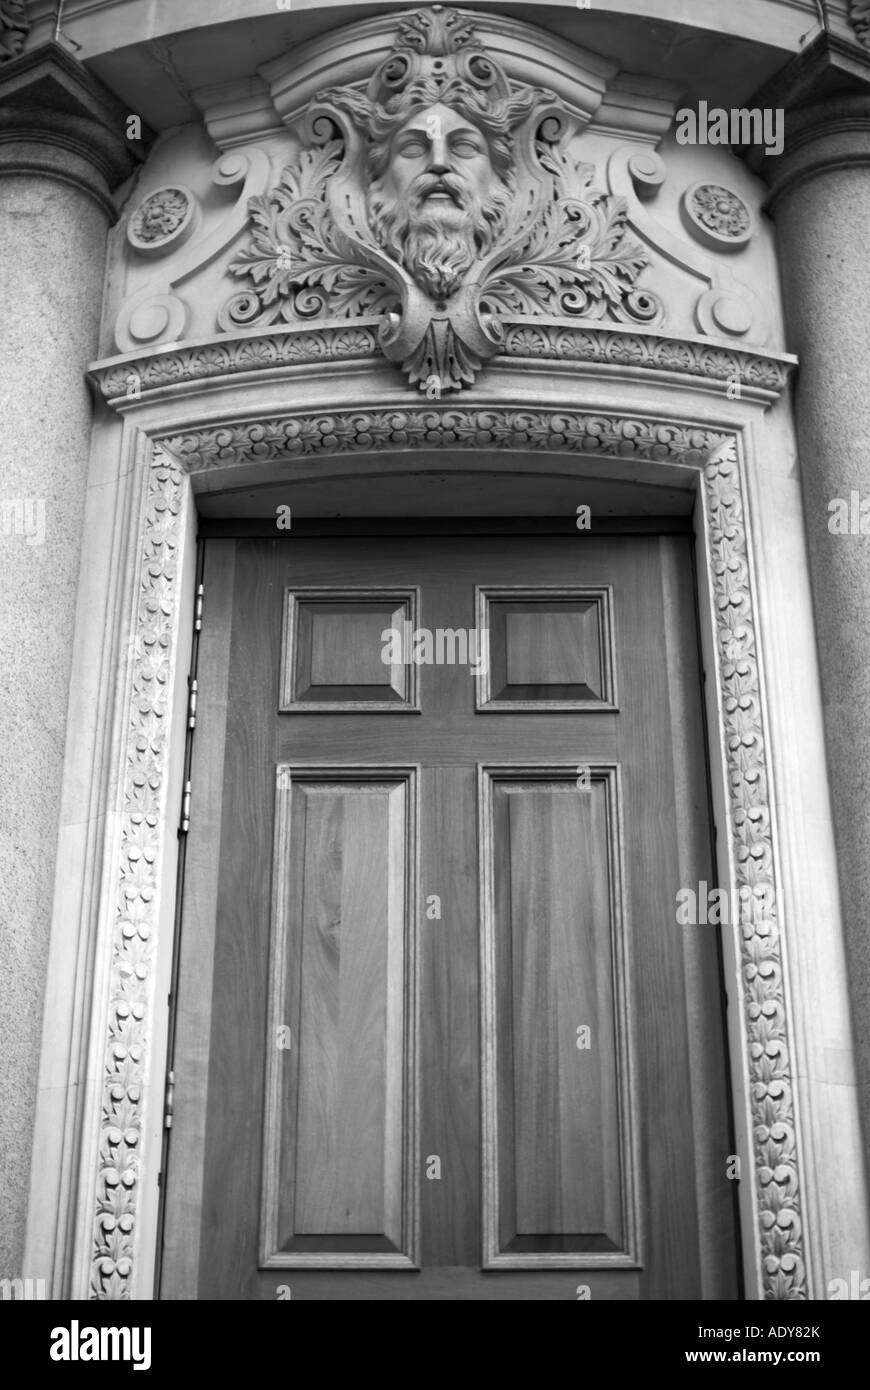 Door in Whitehall with carved stone head. - Stock Image